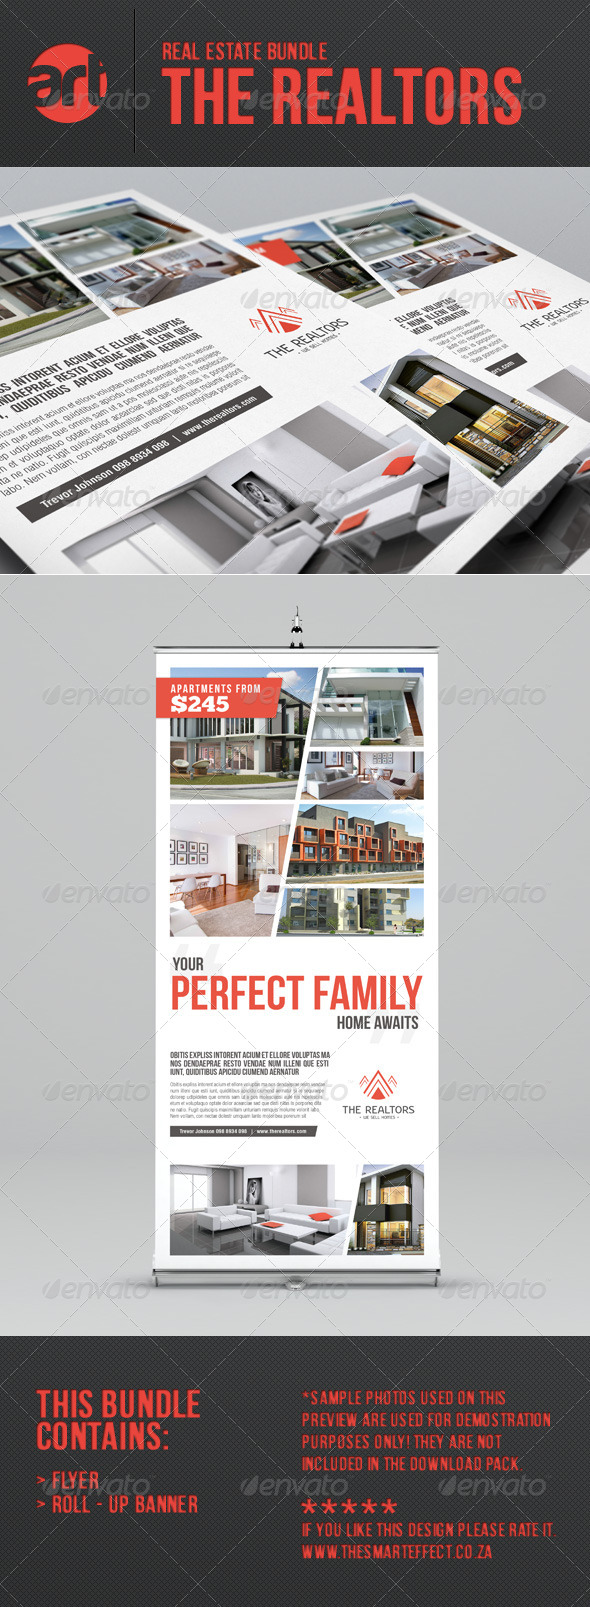 The Realtors Bundle - Print Templates